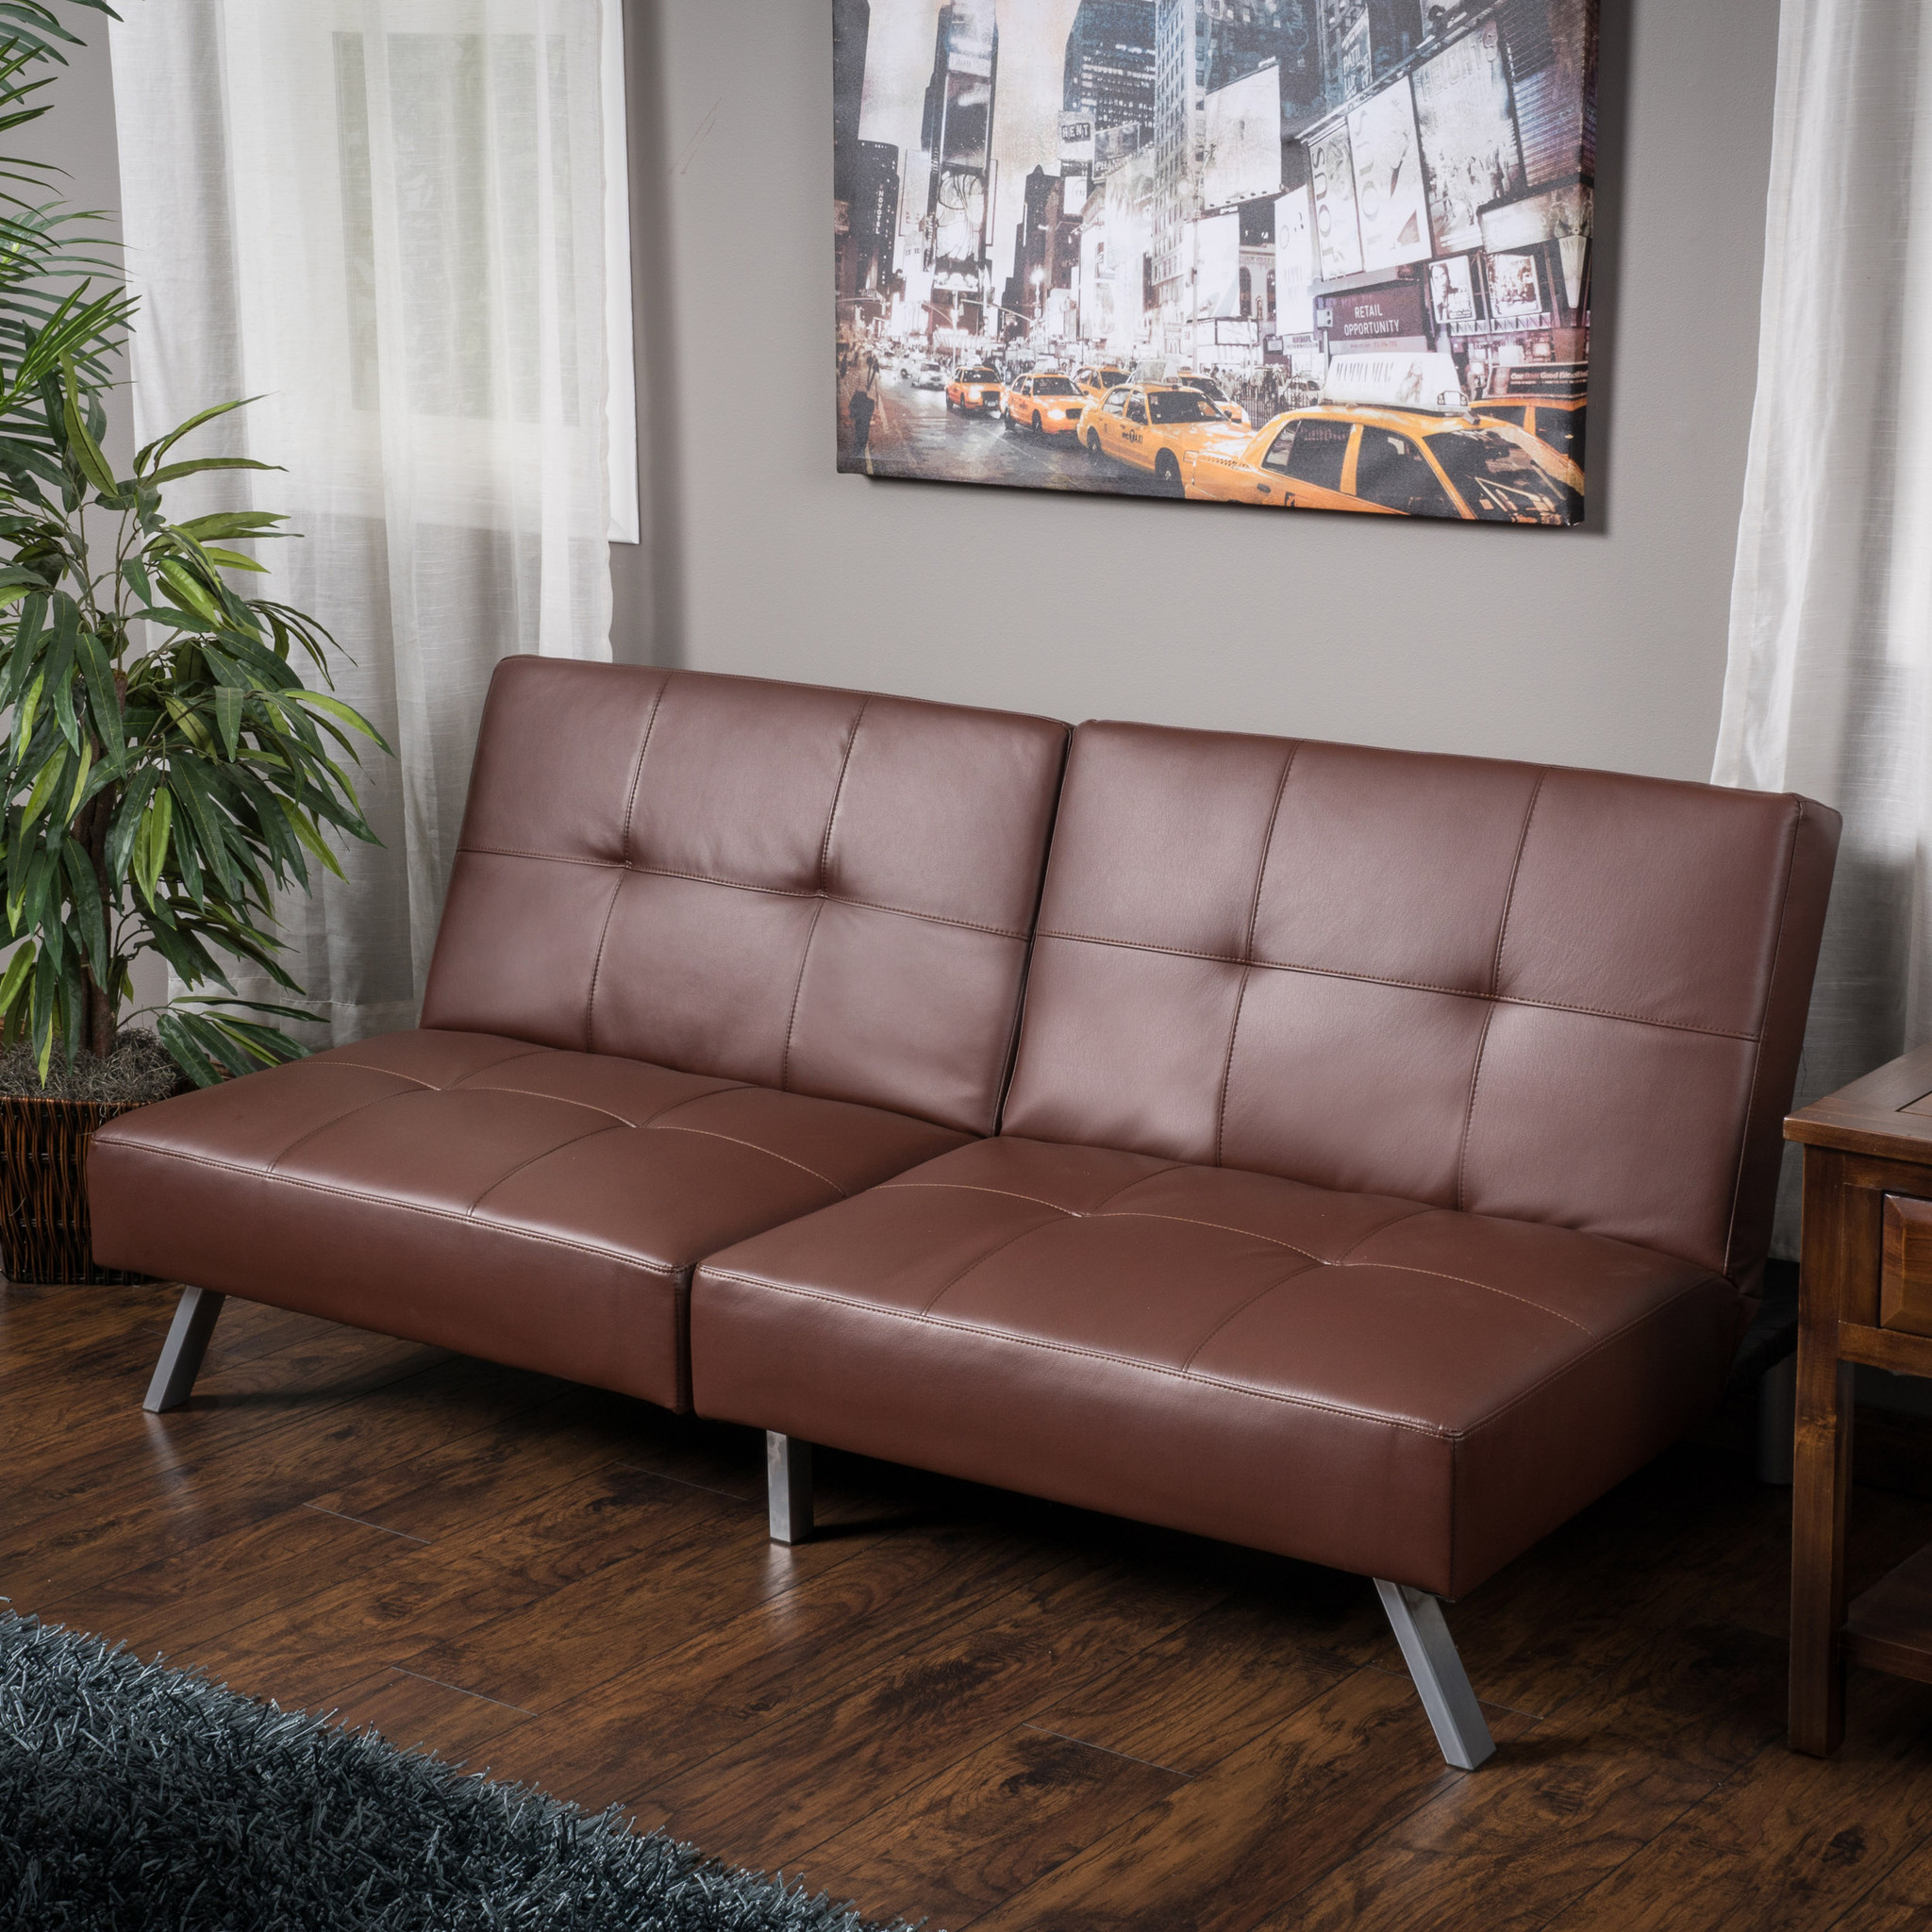 Banks Two Seat Sofa Bed